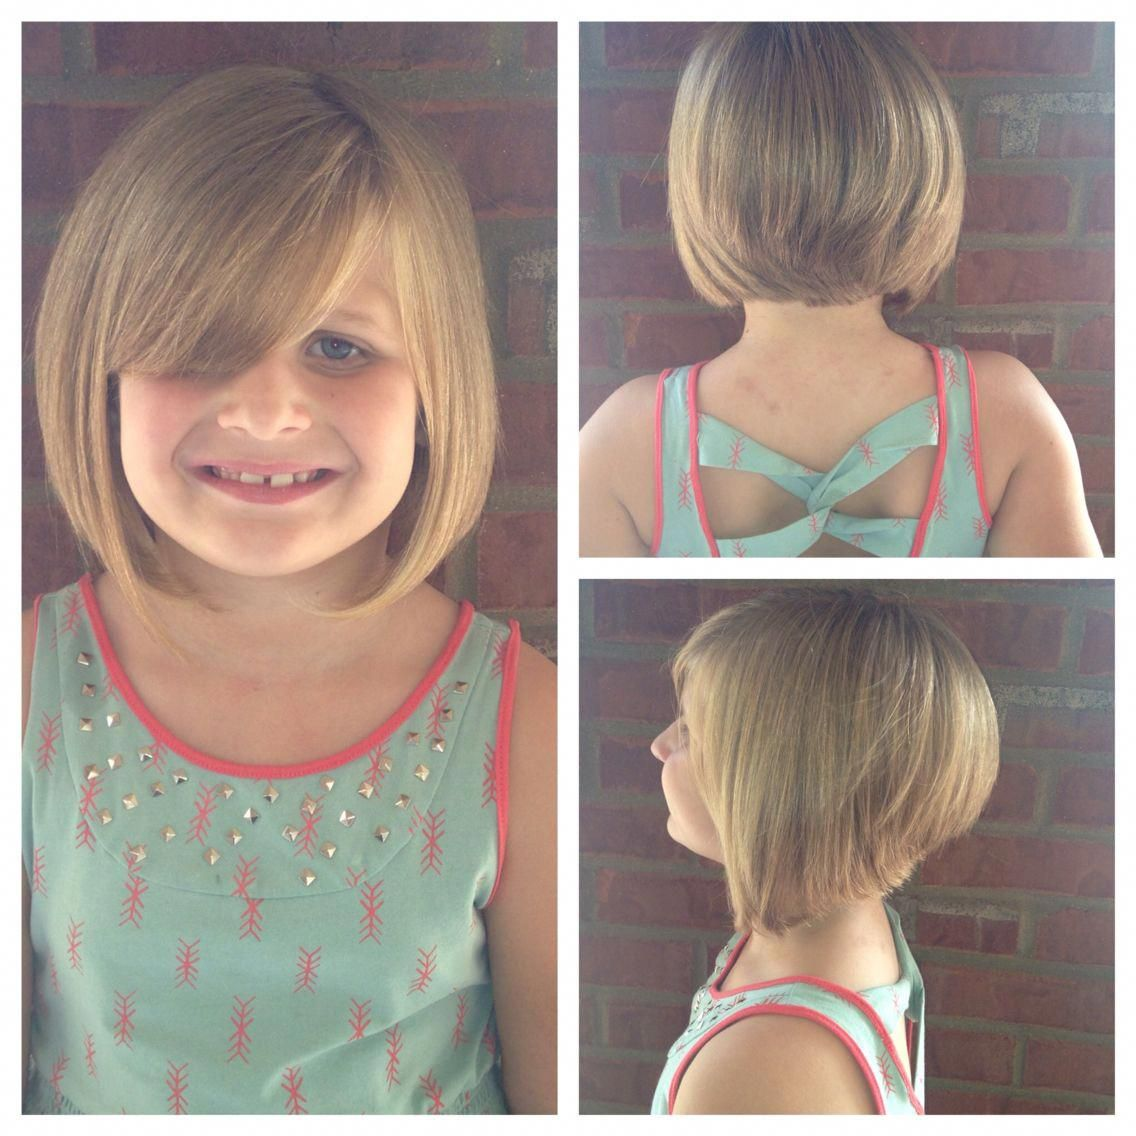 Easy Toddler Hairstyles 5 Year Girl Haircut Girl Haircut Styles For Short Hair 20181225 Girl Haircuts Kids Short Hair Styles Bob Haircut For Girls